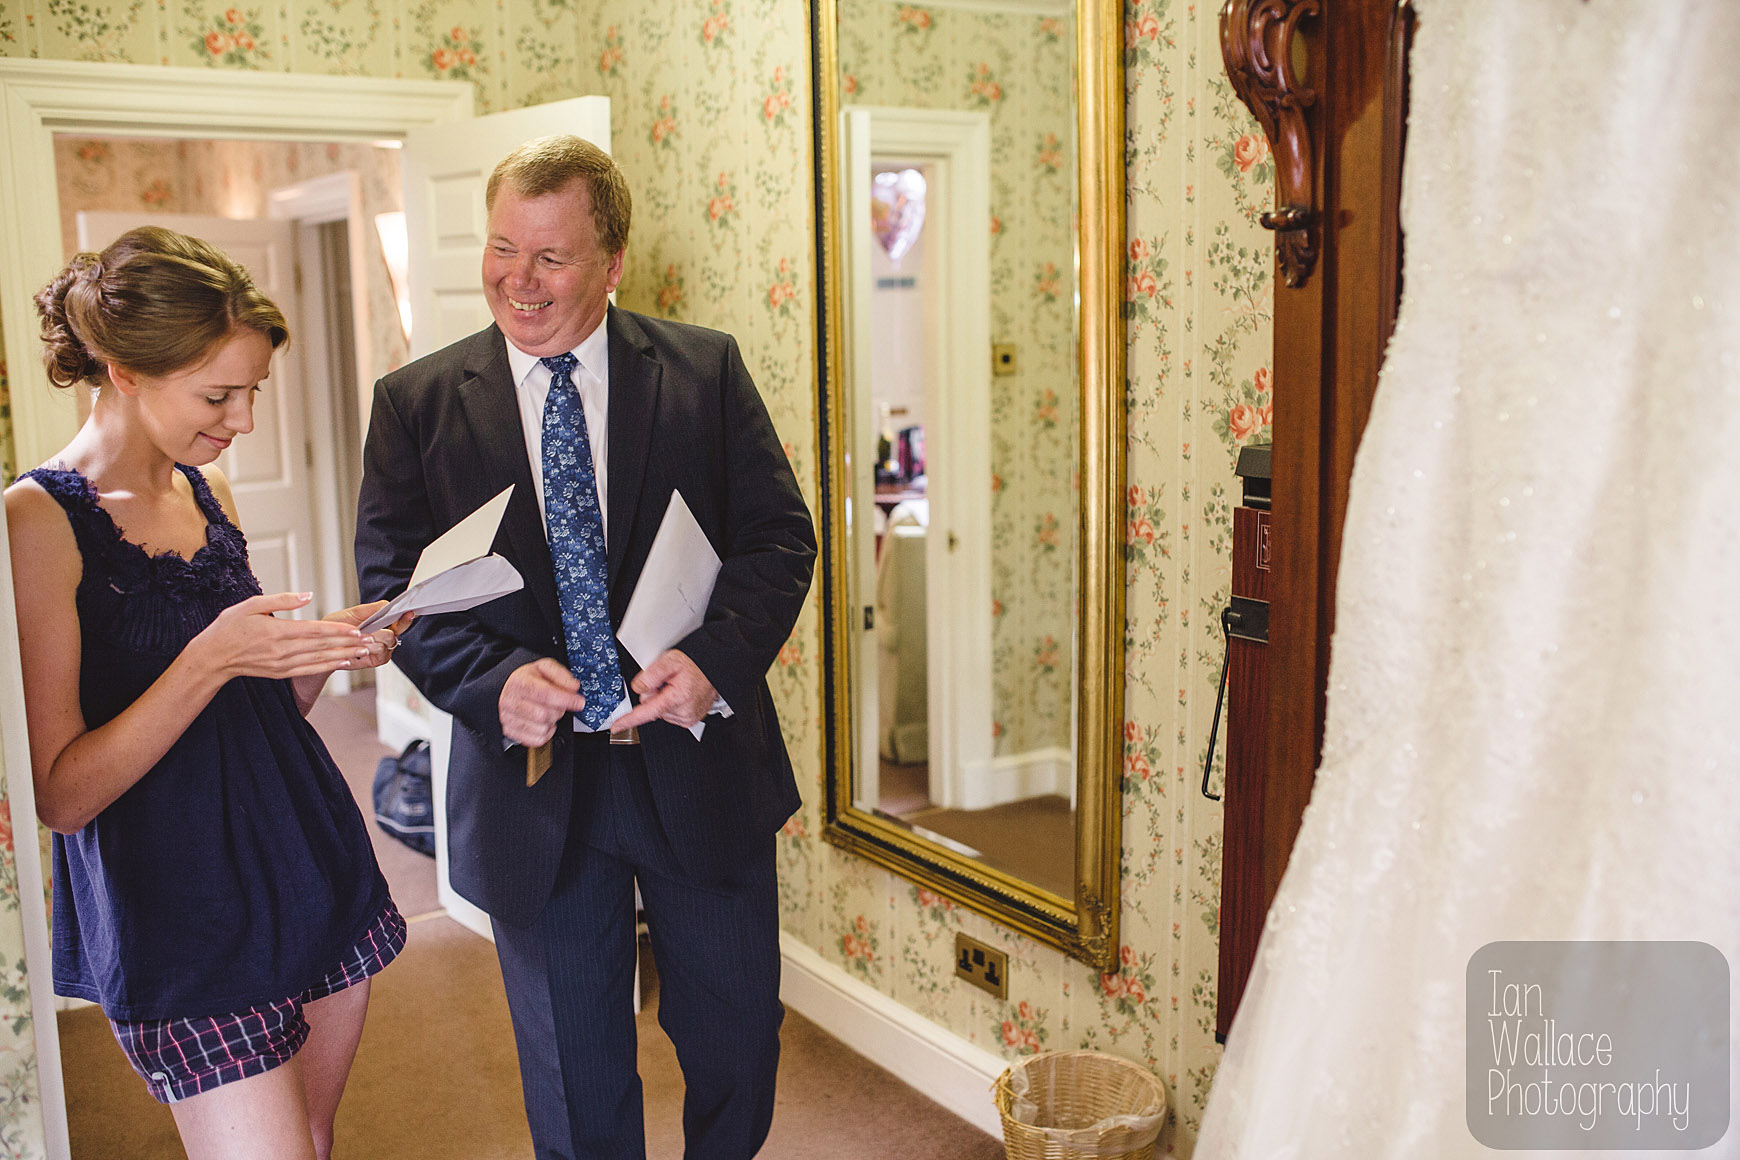 Father of the Bride giving her a card on her wedding day. Tears ensue.